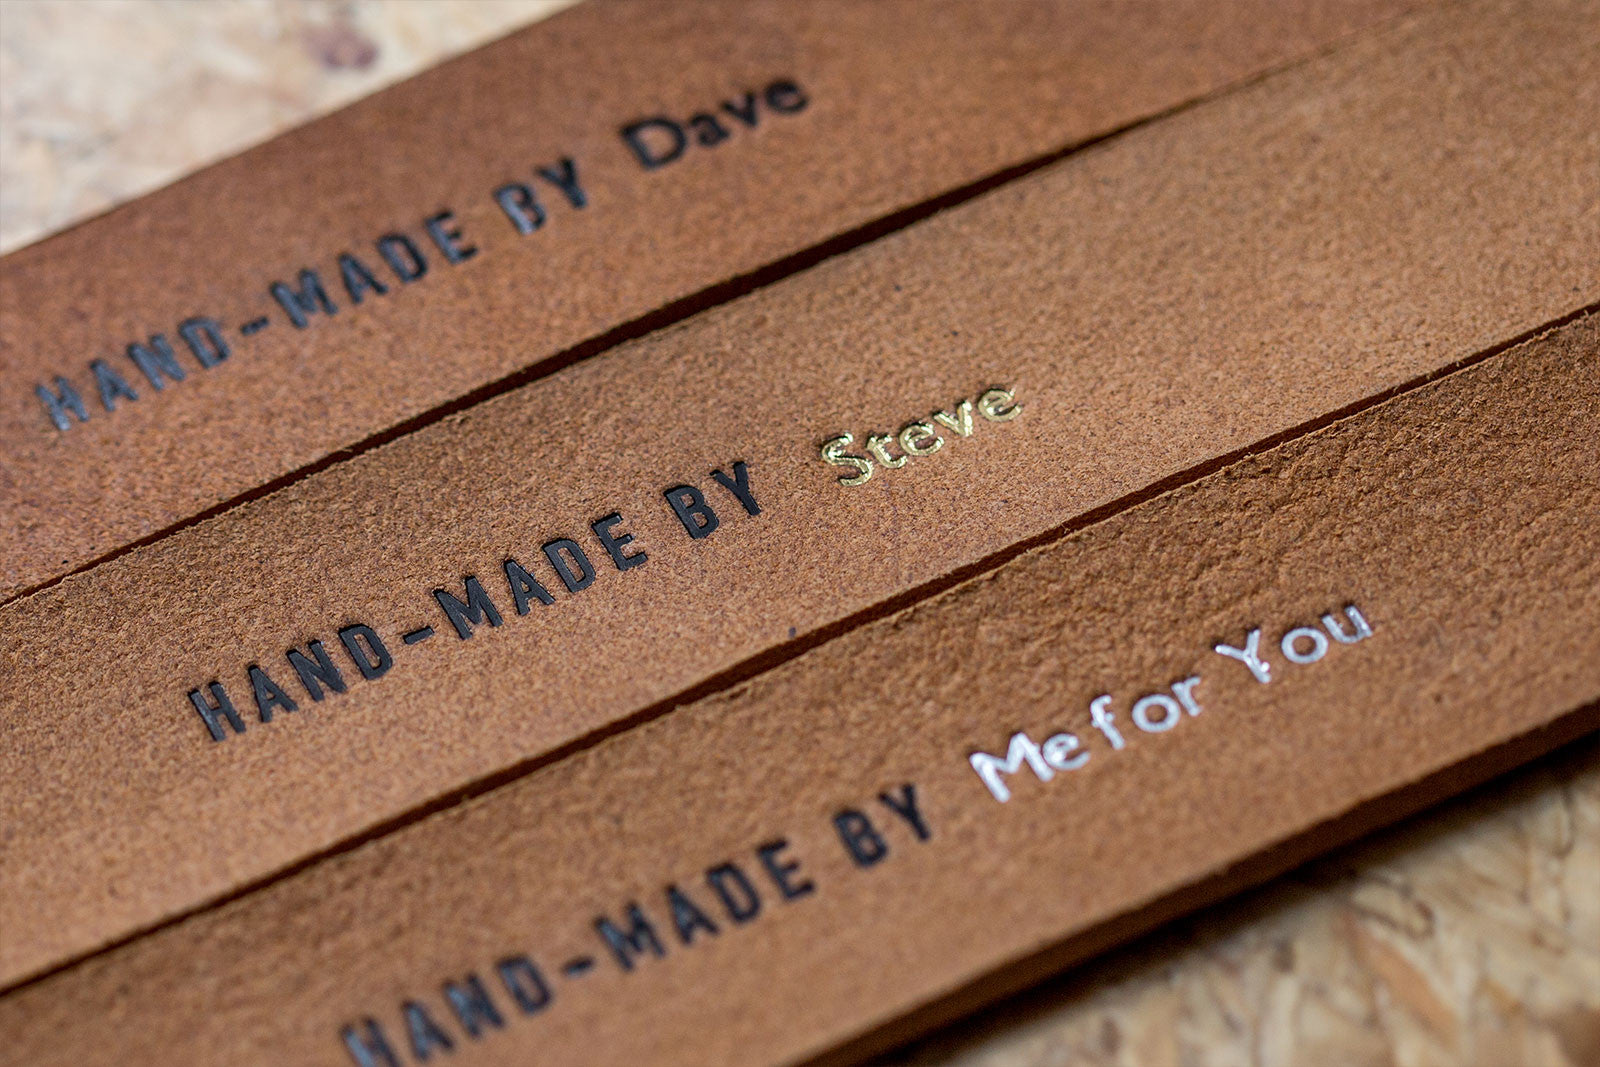 We personalise the belt kit for you with the name of the lucky recipient. – Handmade by …..